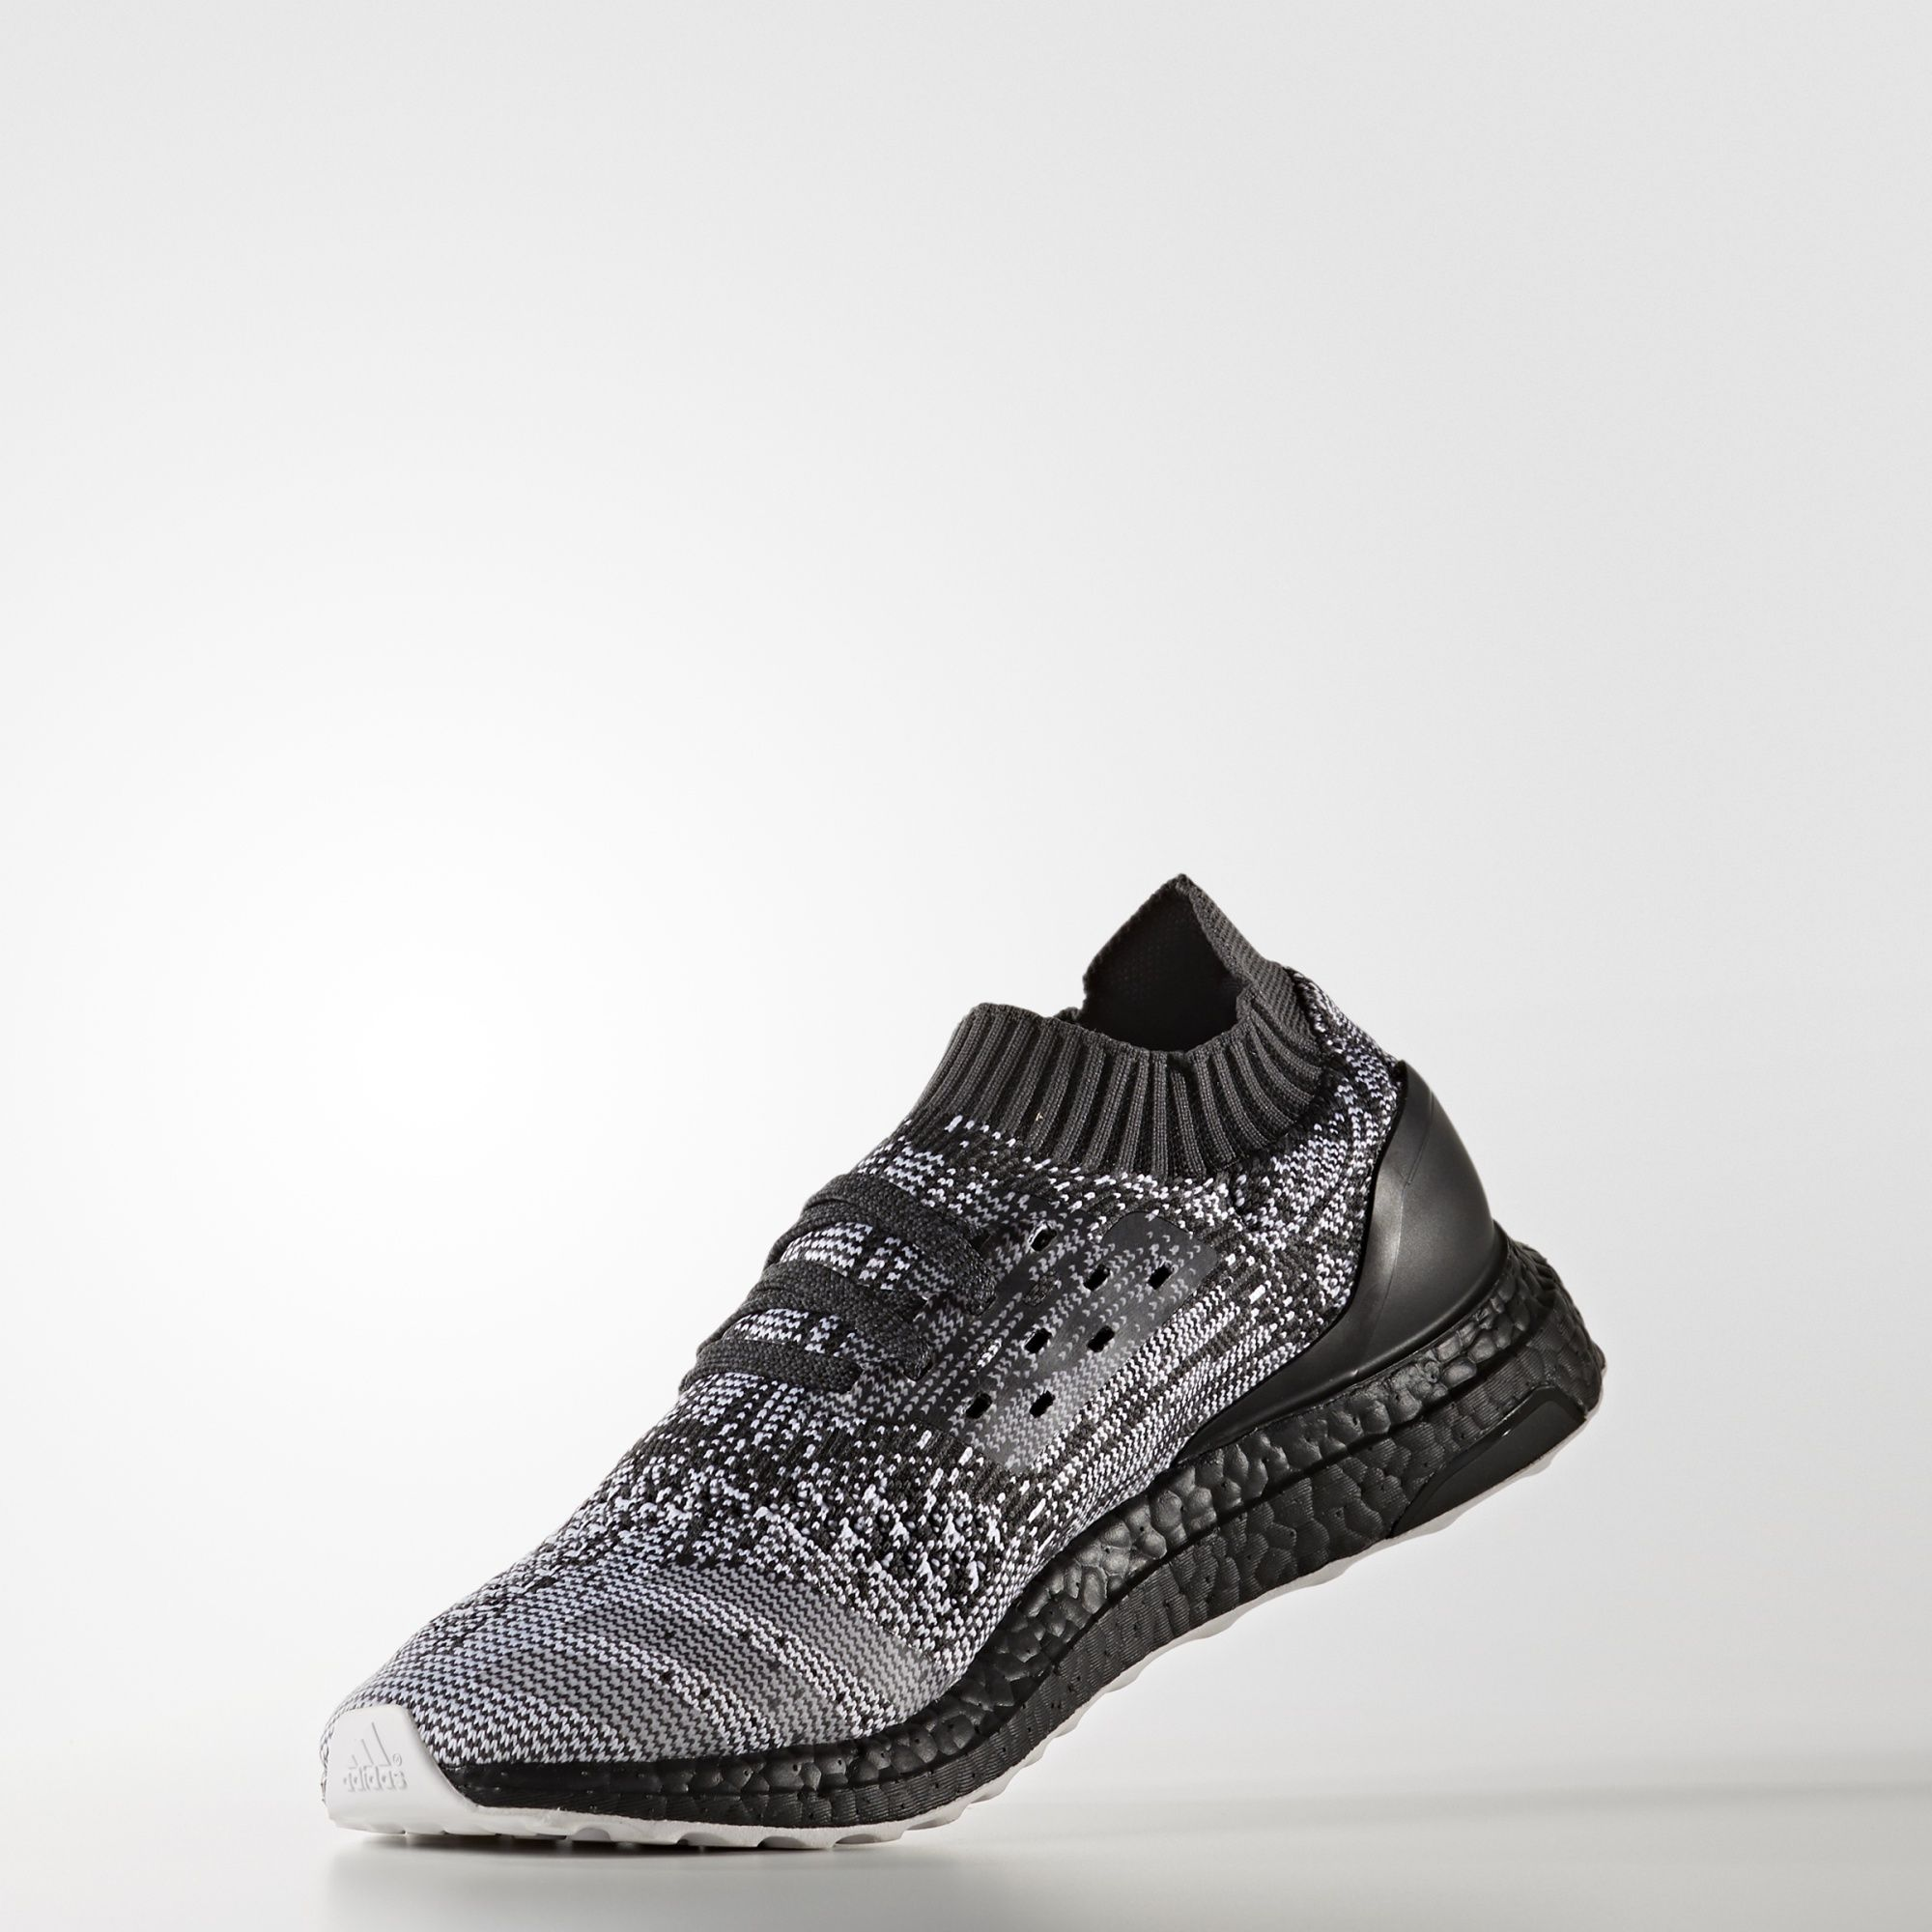 adidas Ultra Boost Uncaged Black Grey S80698 2